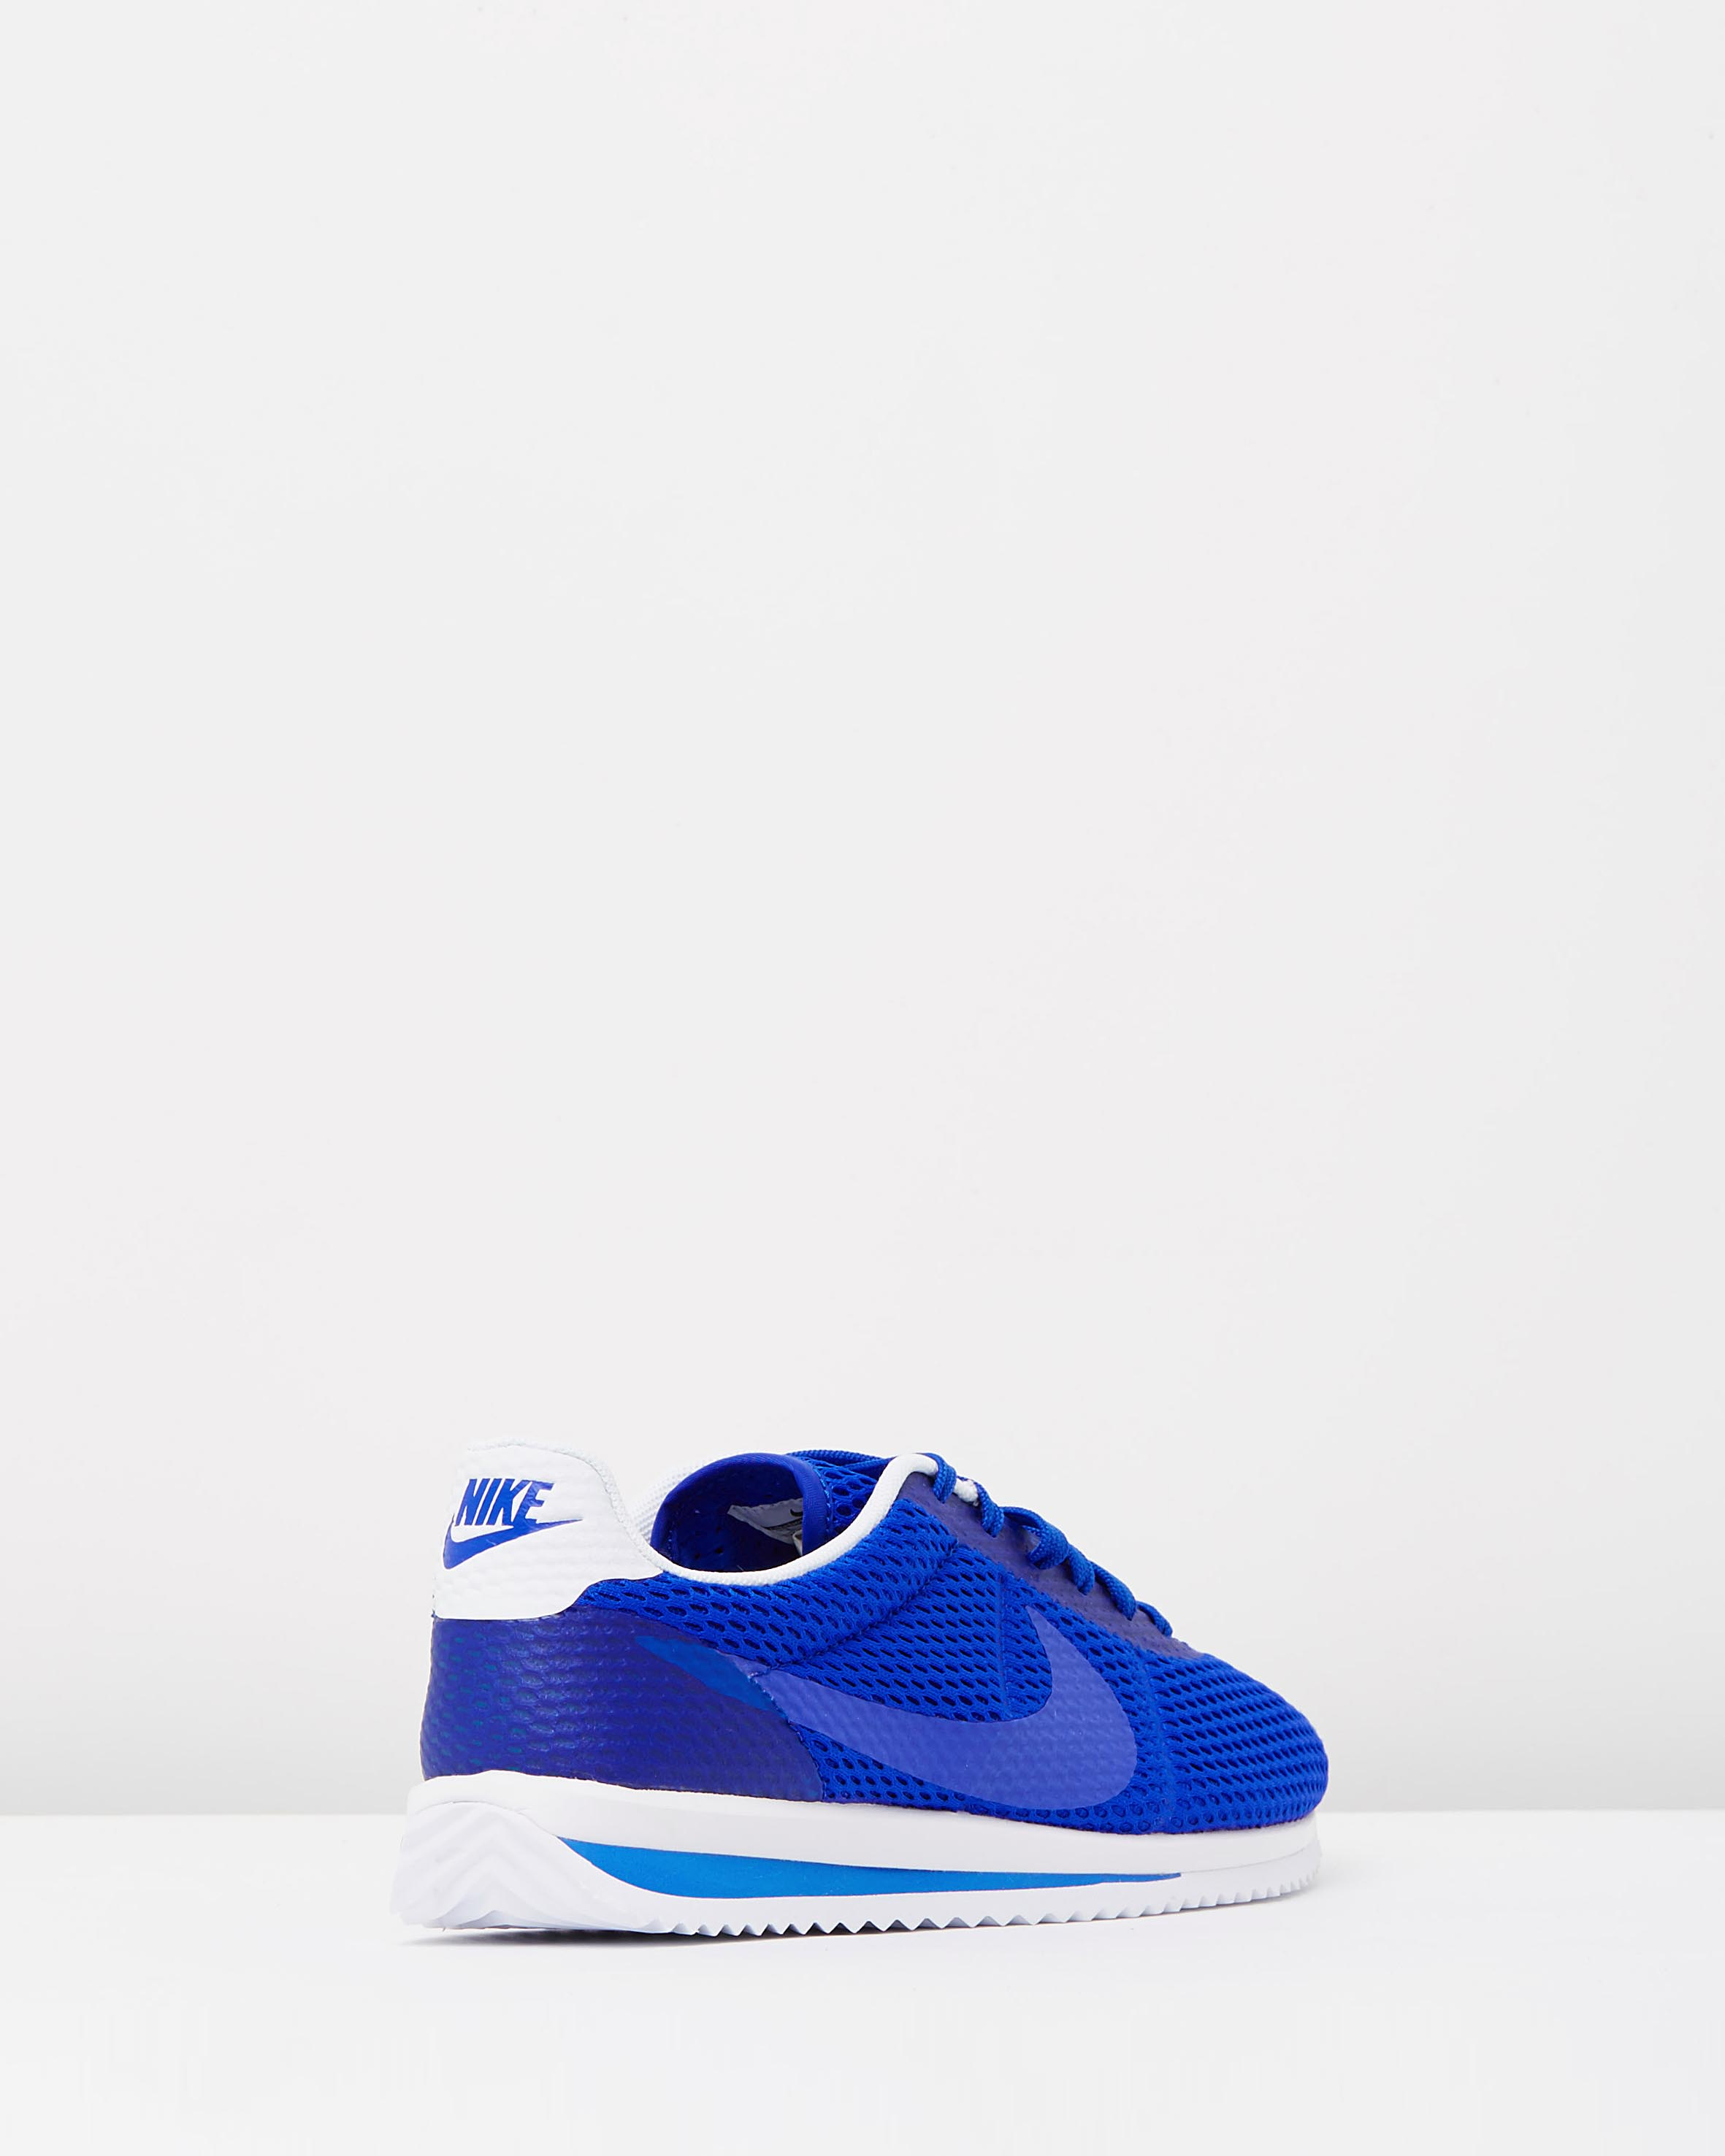 new styles 034c2 fb018 ... Nike Cortez Ultra BR Total Blue White 2 ...